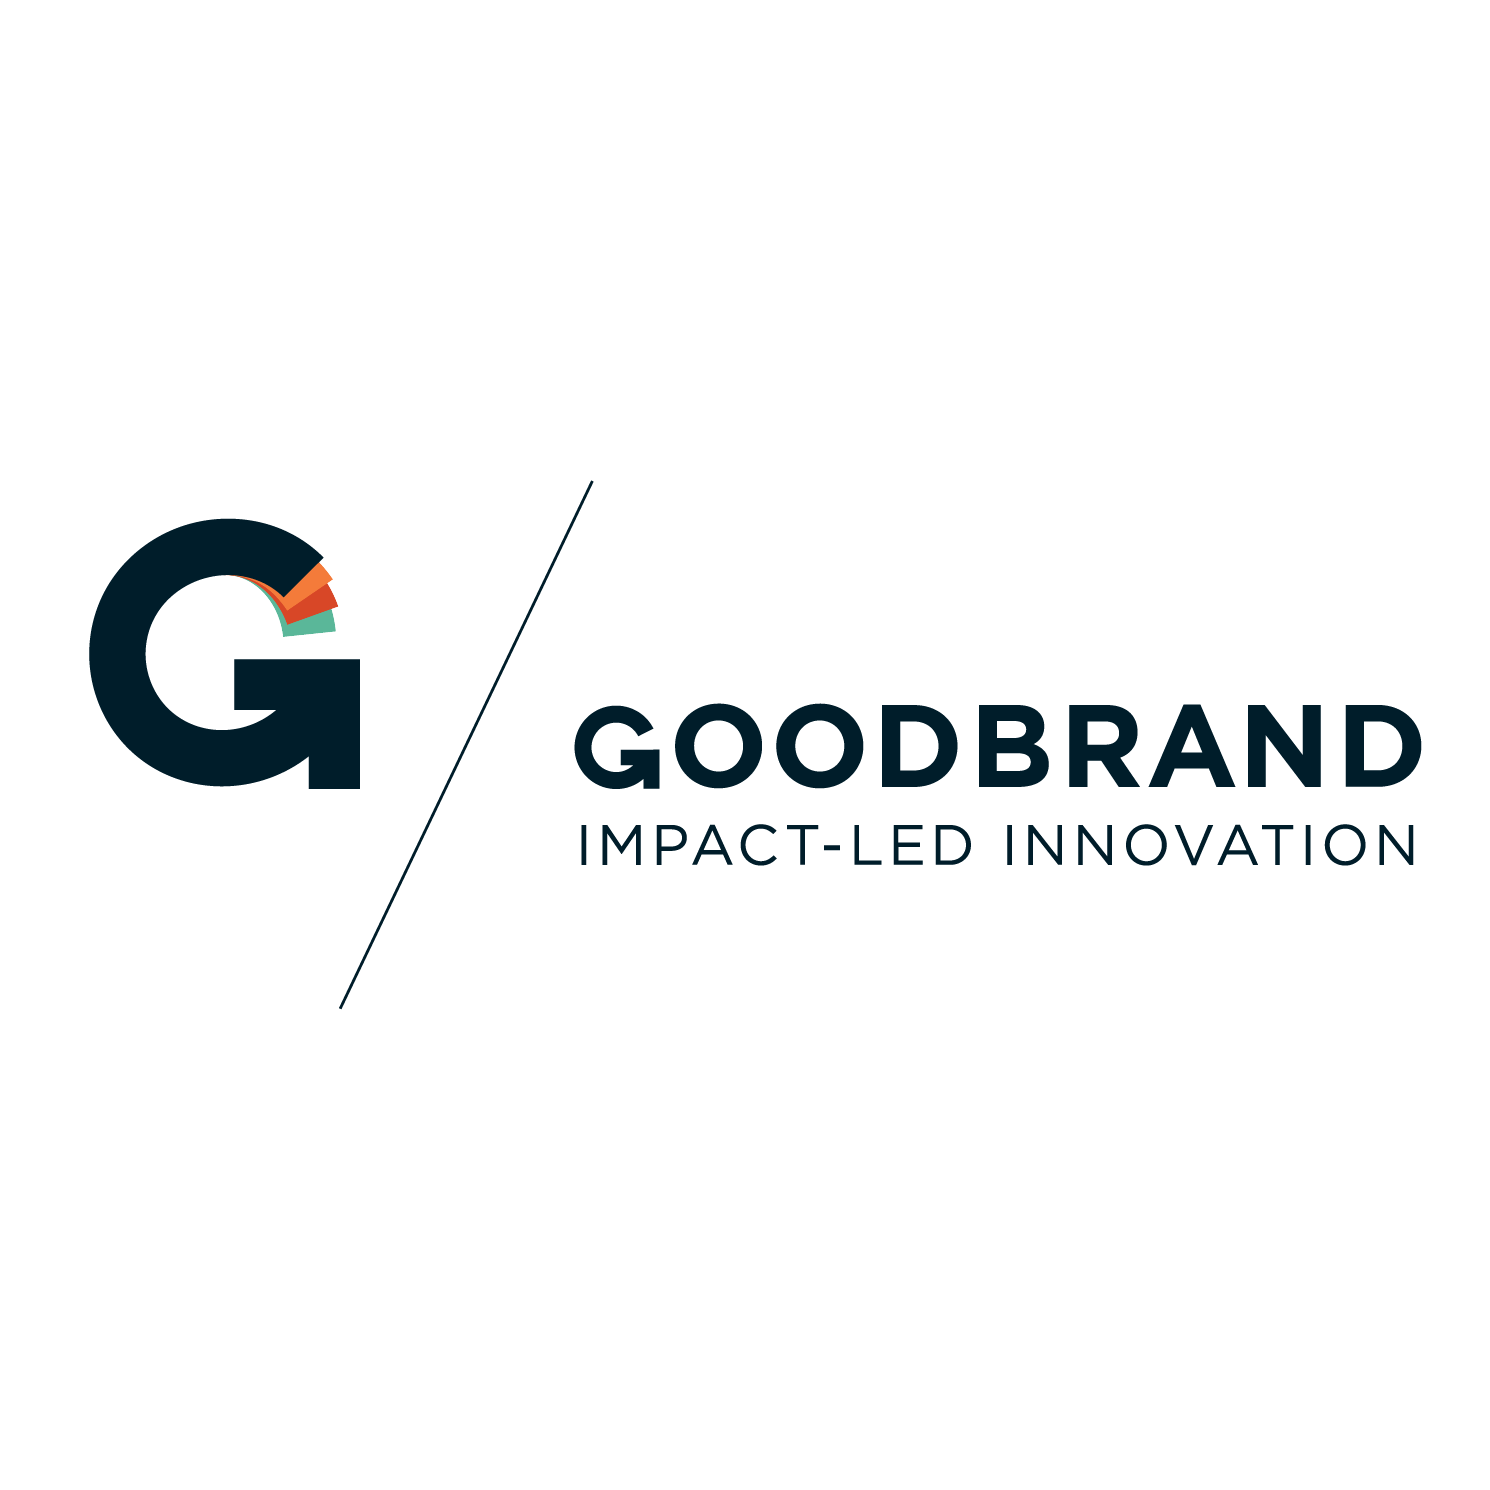 goodbrand logo square